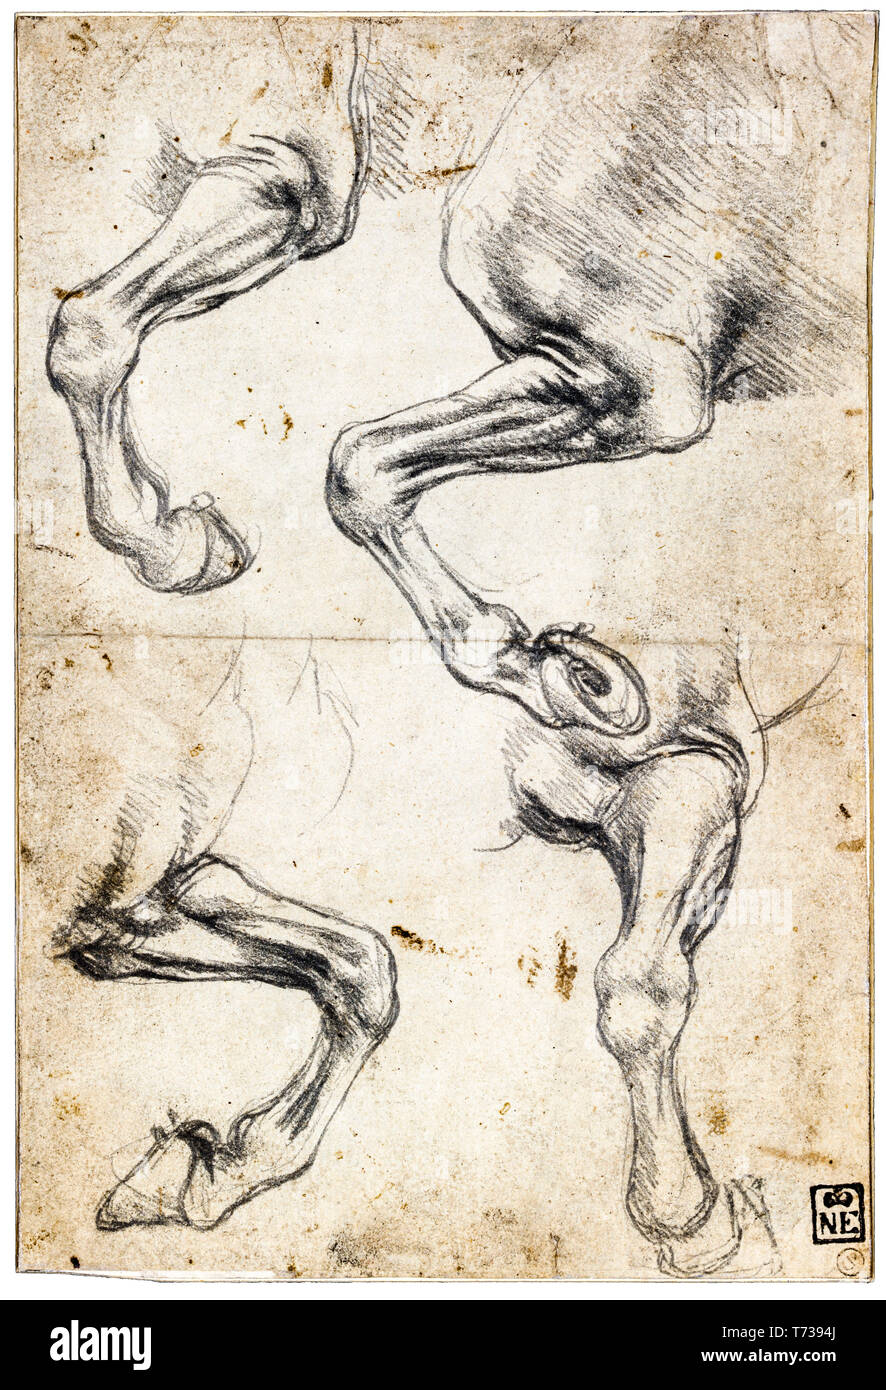 Leonardo da Vinci, Studies of Horse's Leg, chalk anatomical drawing, c. 1485 - Stock Image